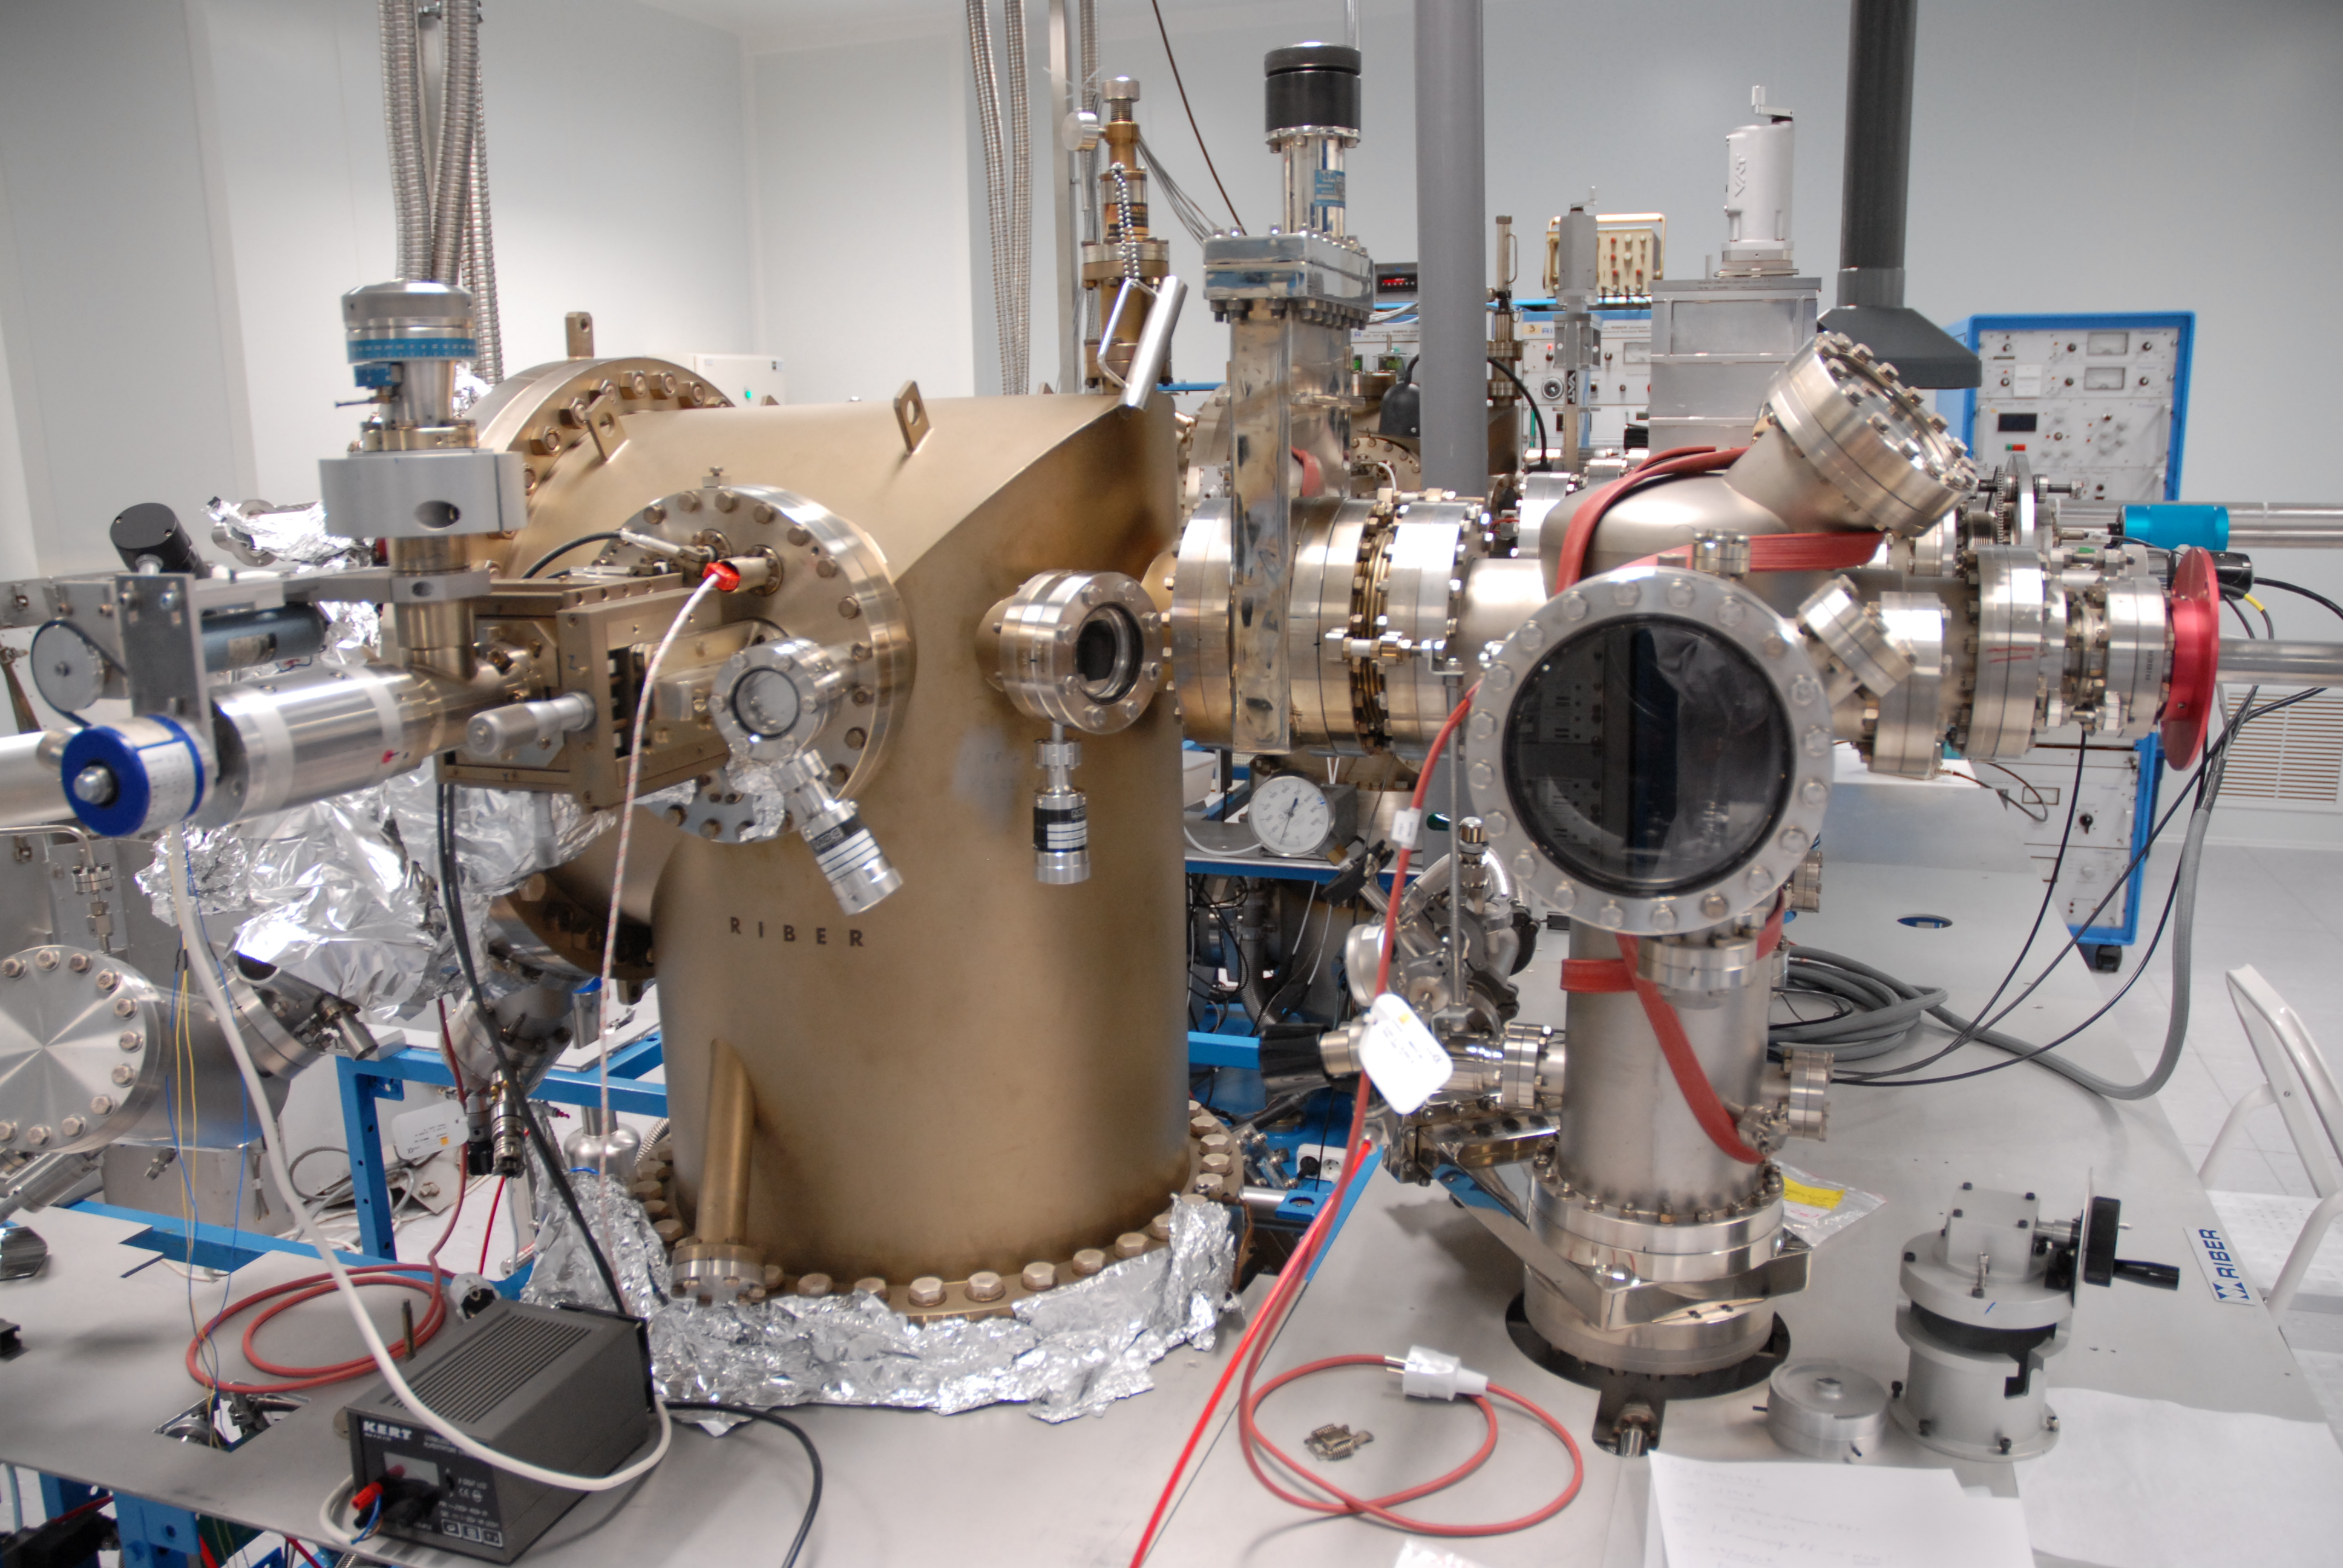 Molecular beam epitaxy system at LAAS. Image credit: Guillaume Paumier